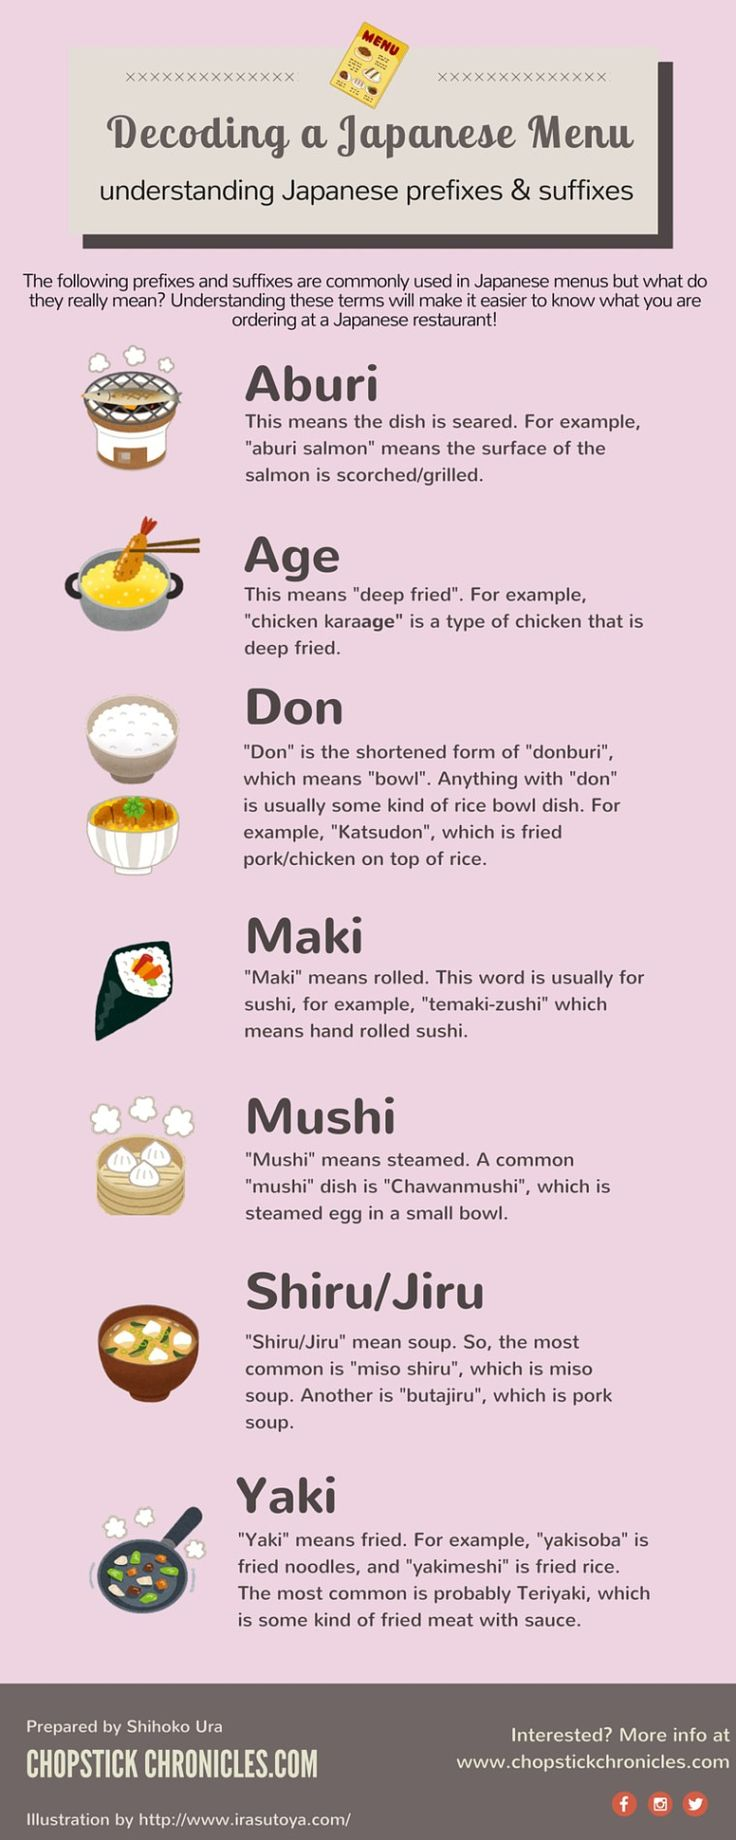 Understanding Japanese Food Terms   Chopstick Chronicles